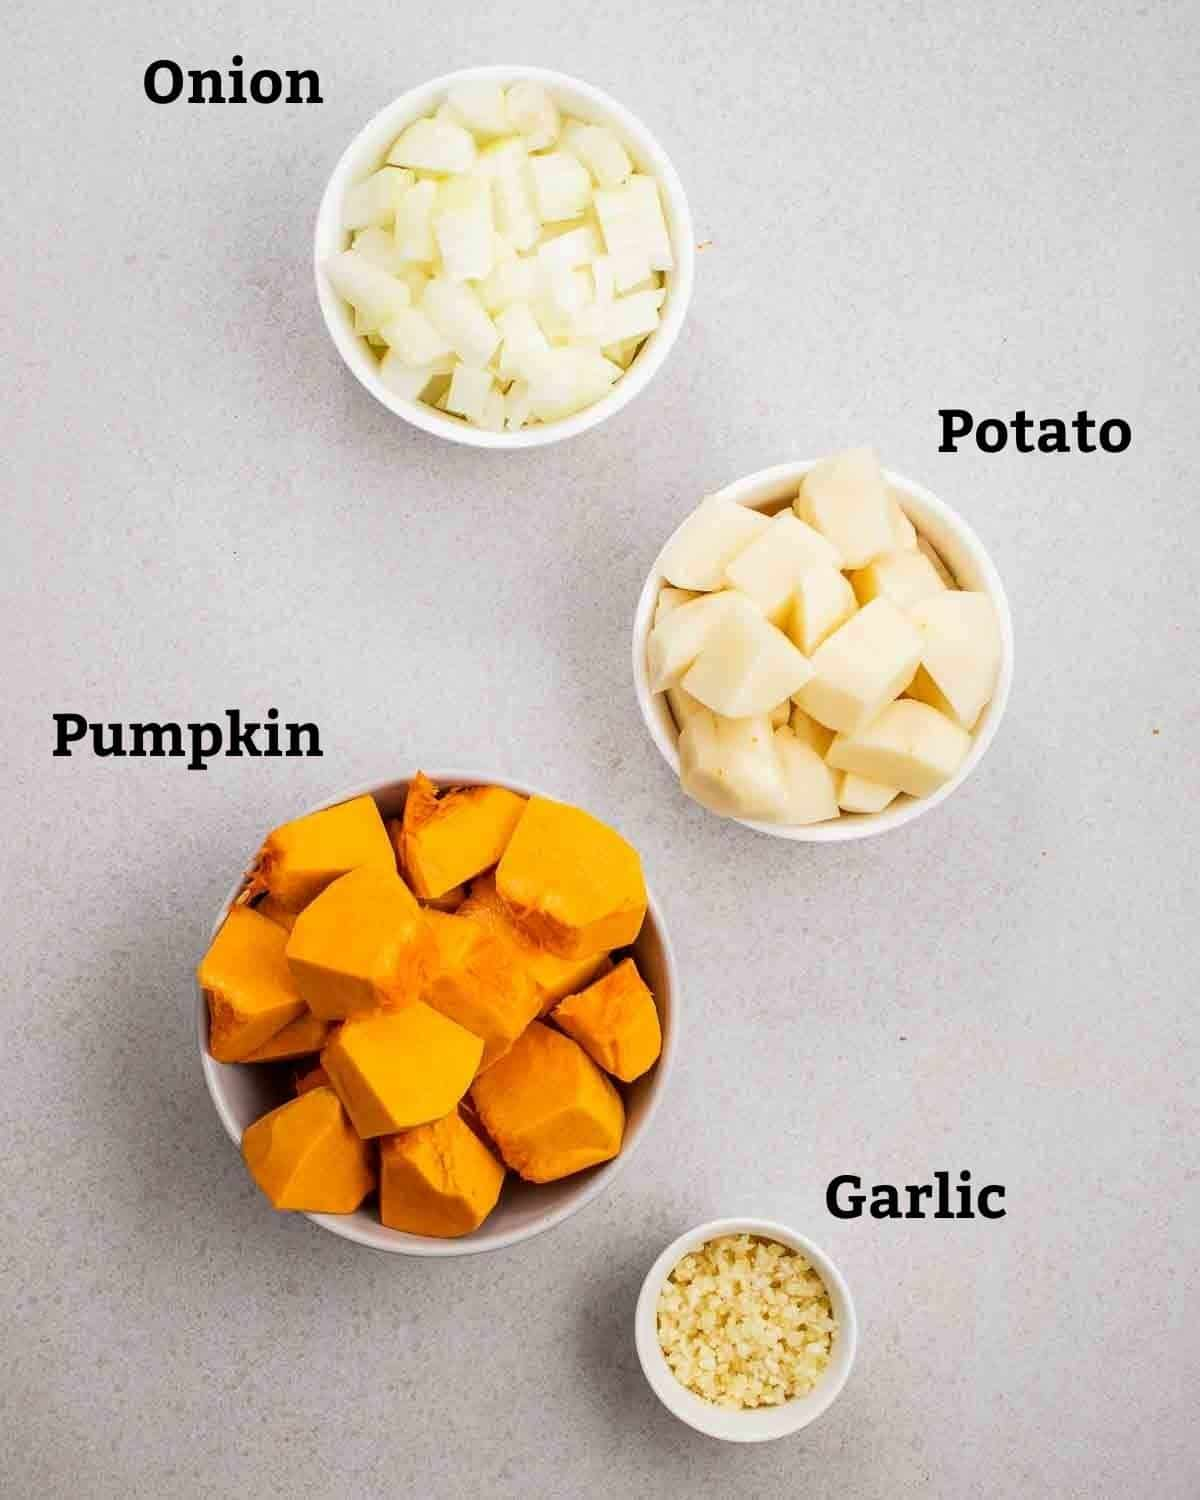 Ingredients needed like pumpkin, potato, onion and garlic in bowls on a grey background.